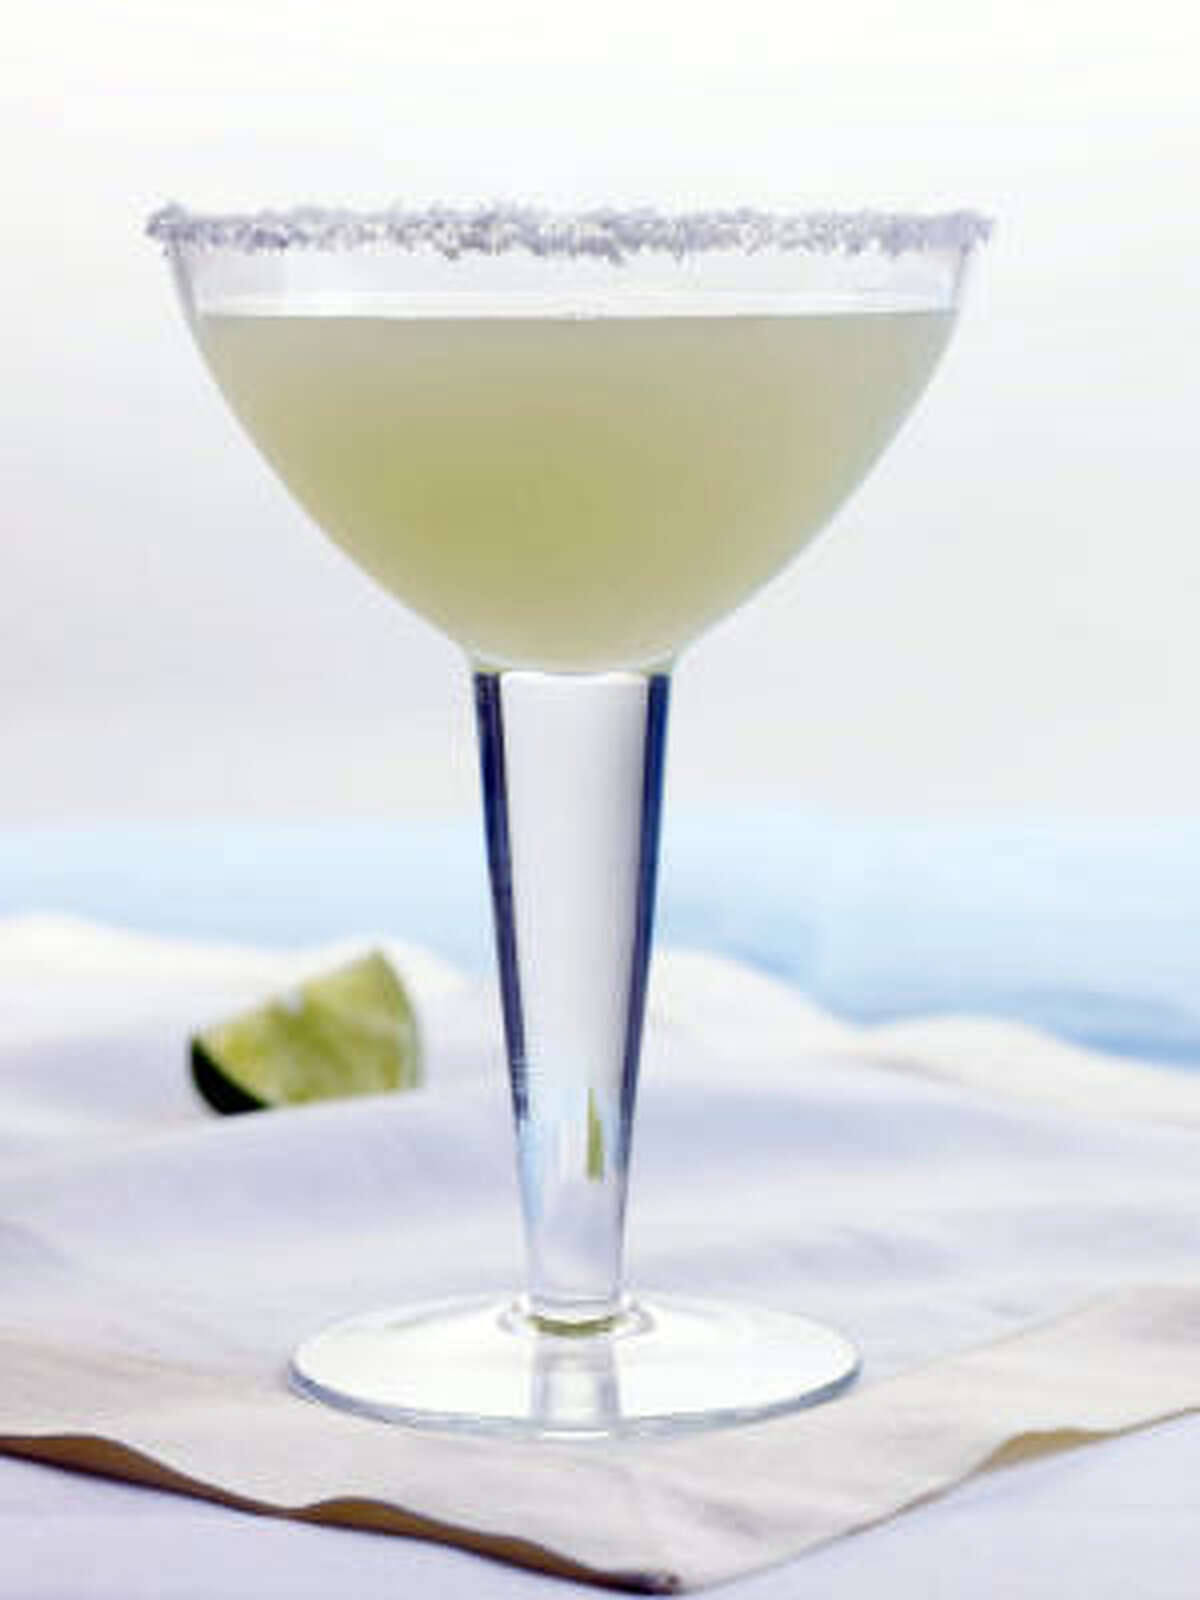 A classic frozen margarita This is the perfect margarita from Kim Haasarud's